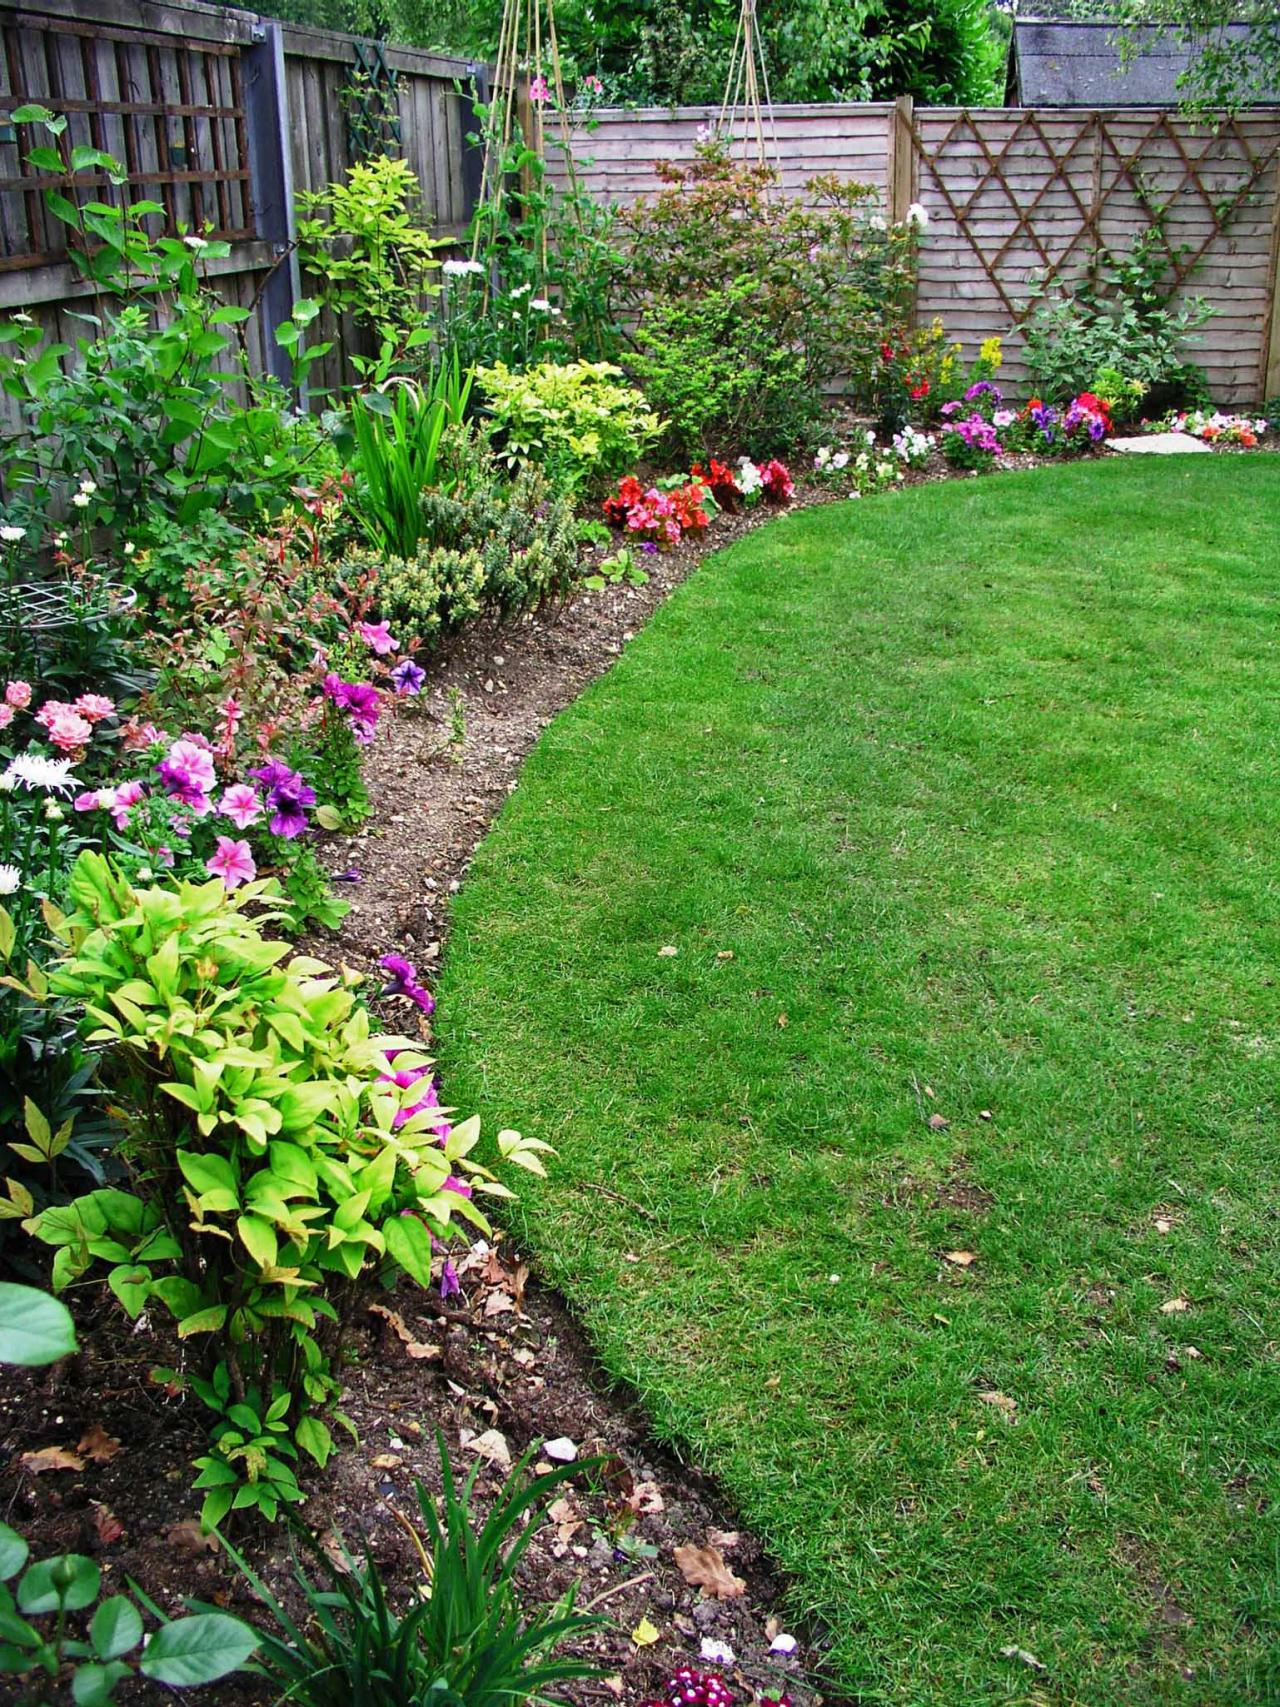 Use Edging to Keep Weeds and Lawn Away From Flower Beds | HGTV